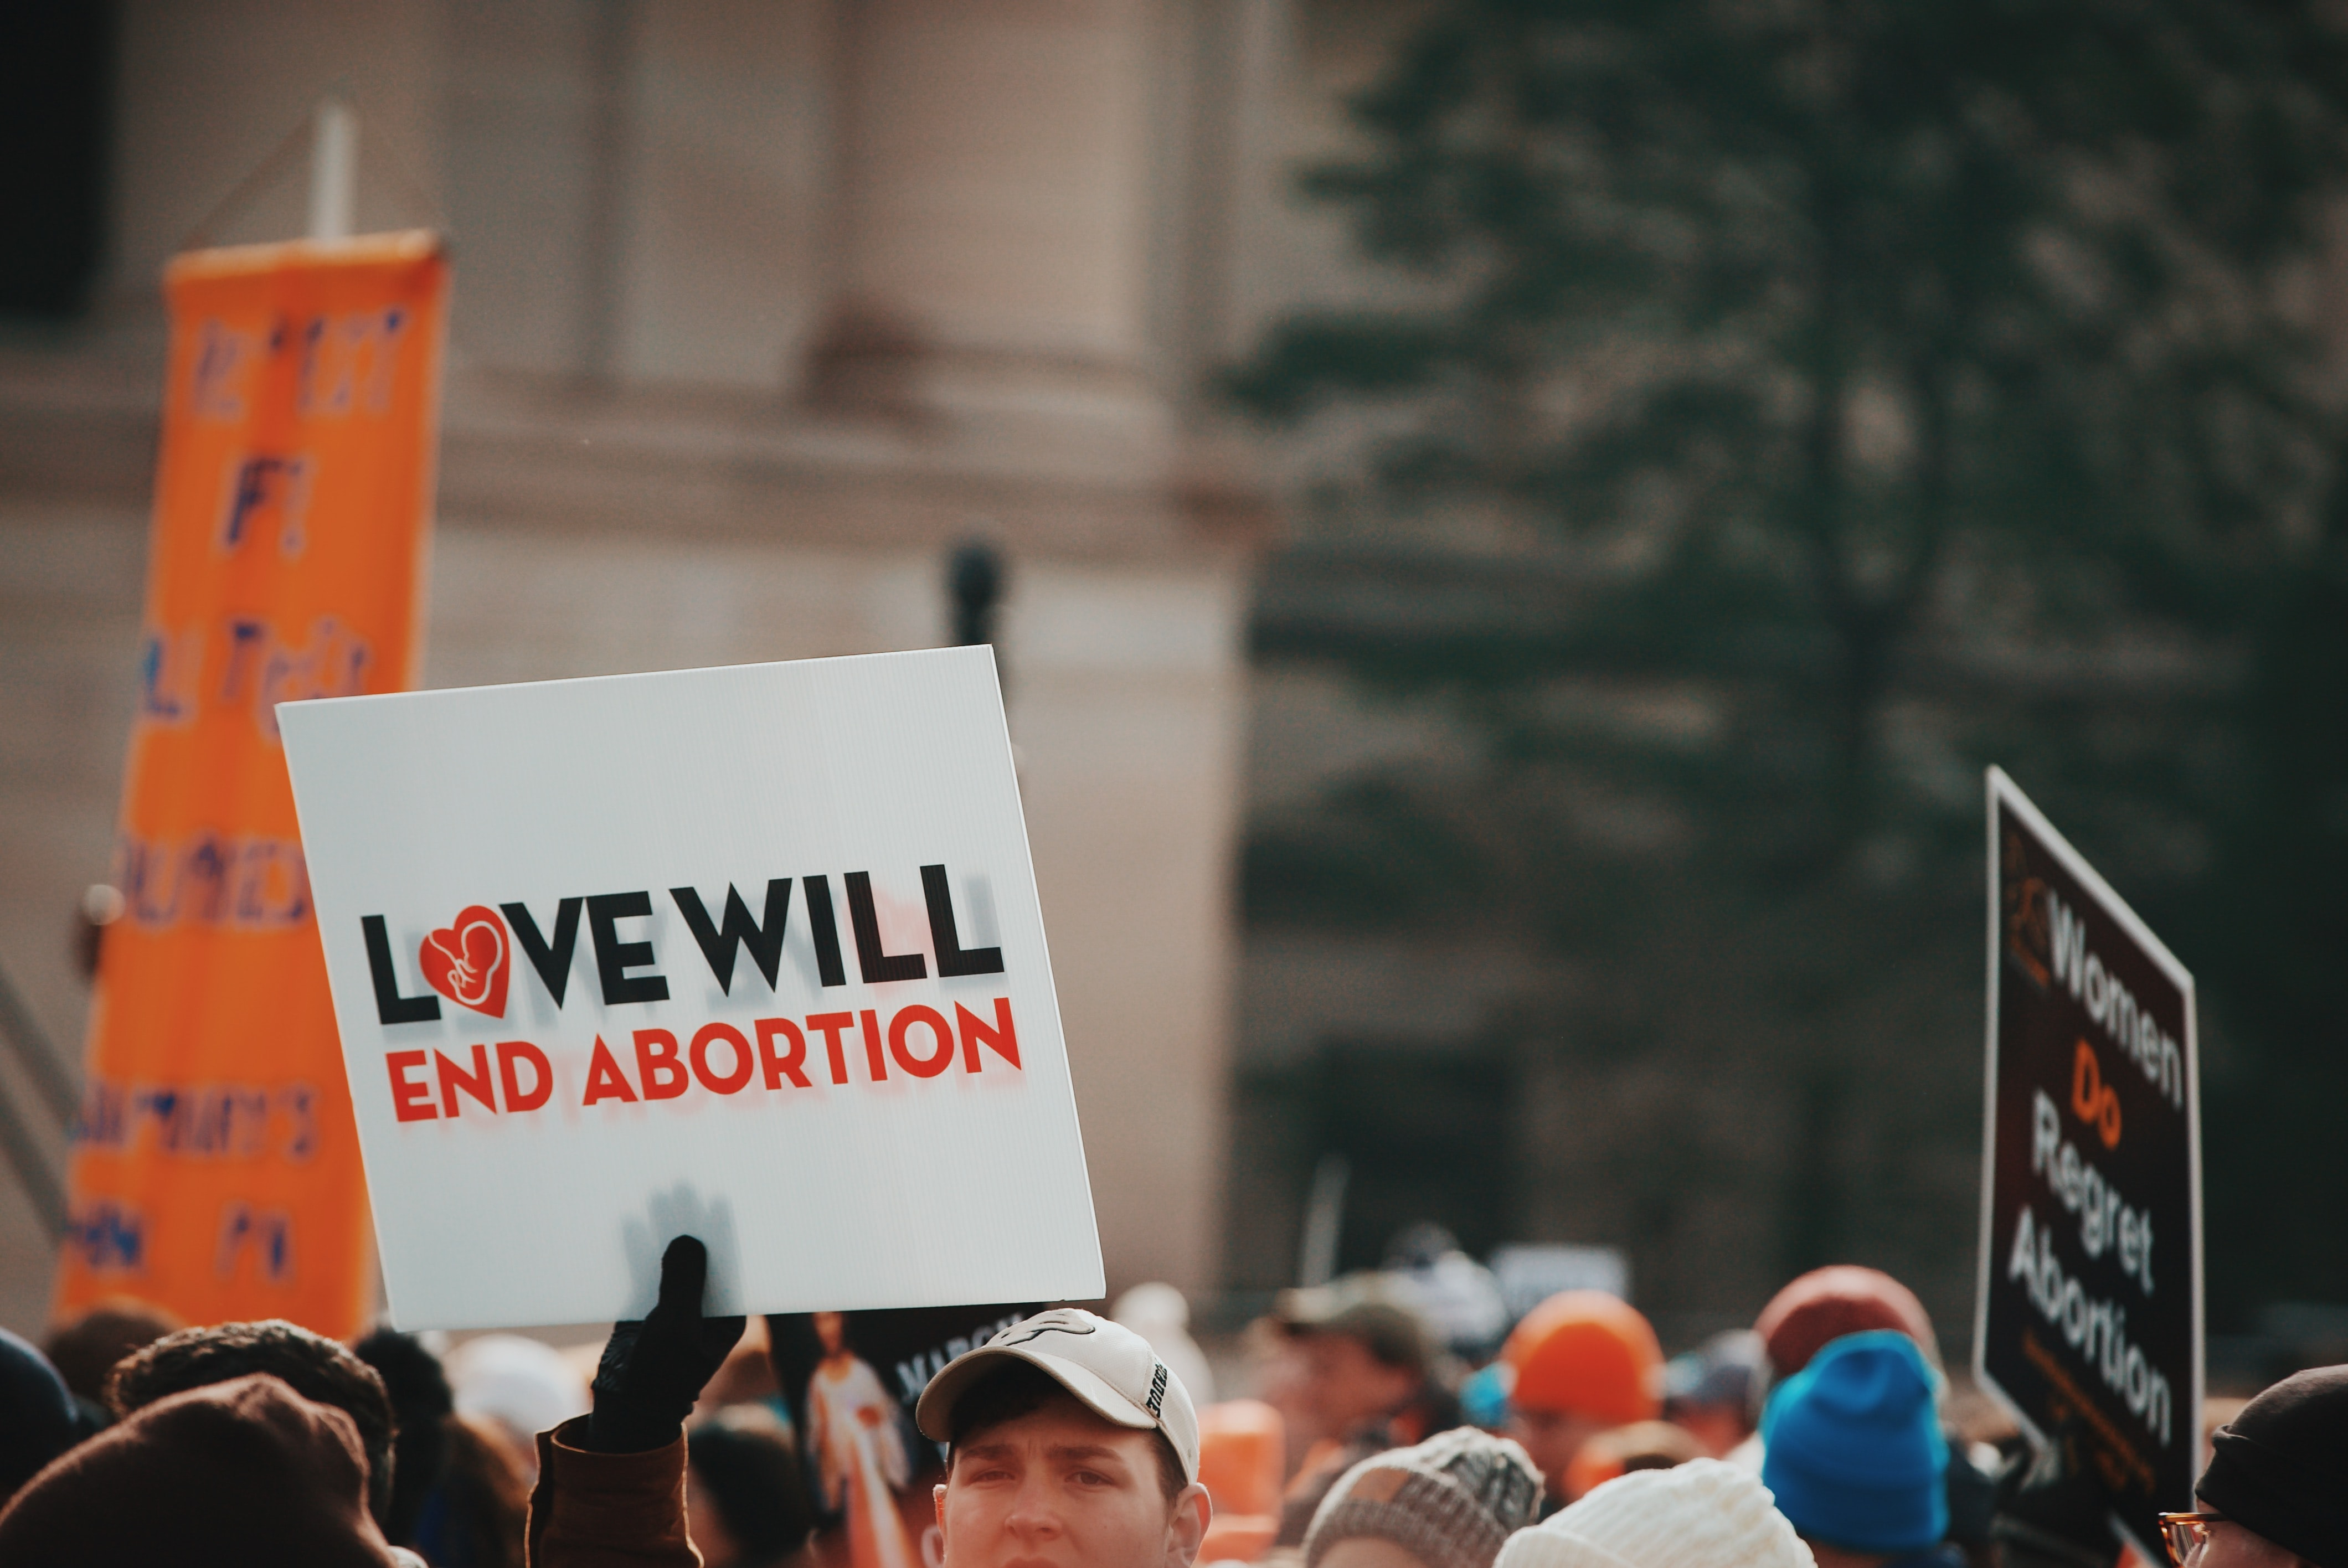 love will end abortion sign